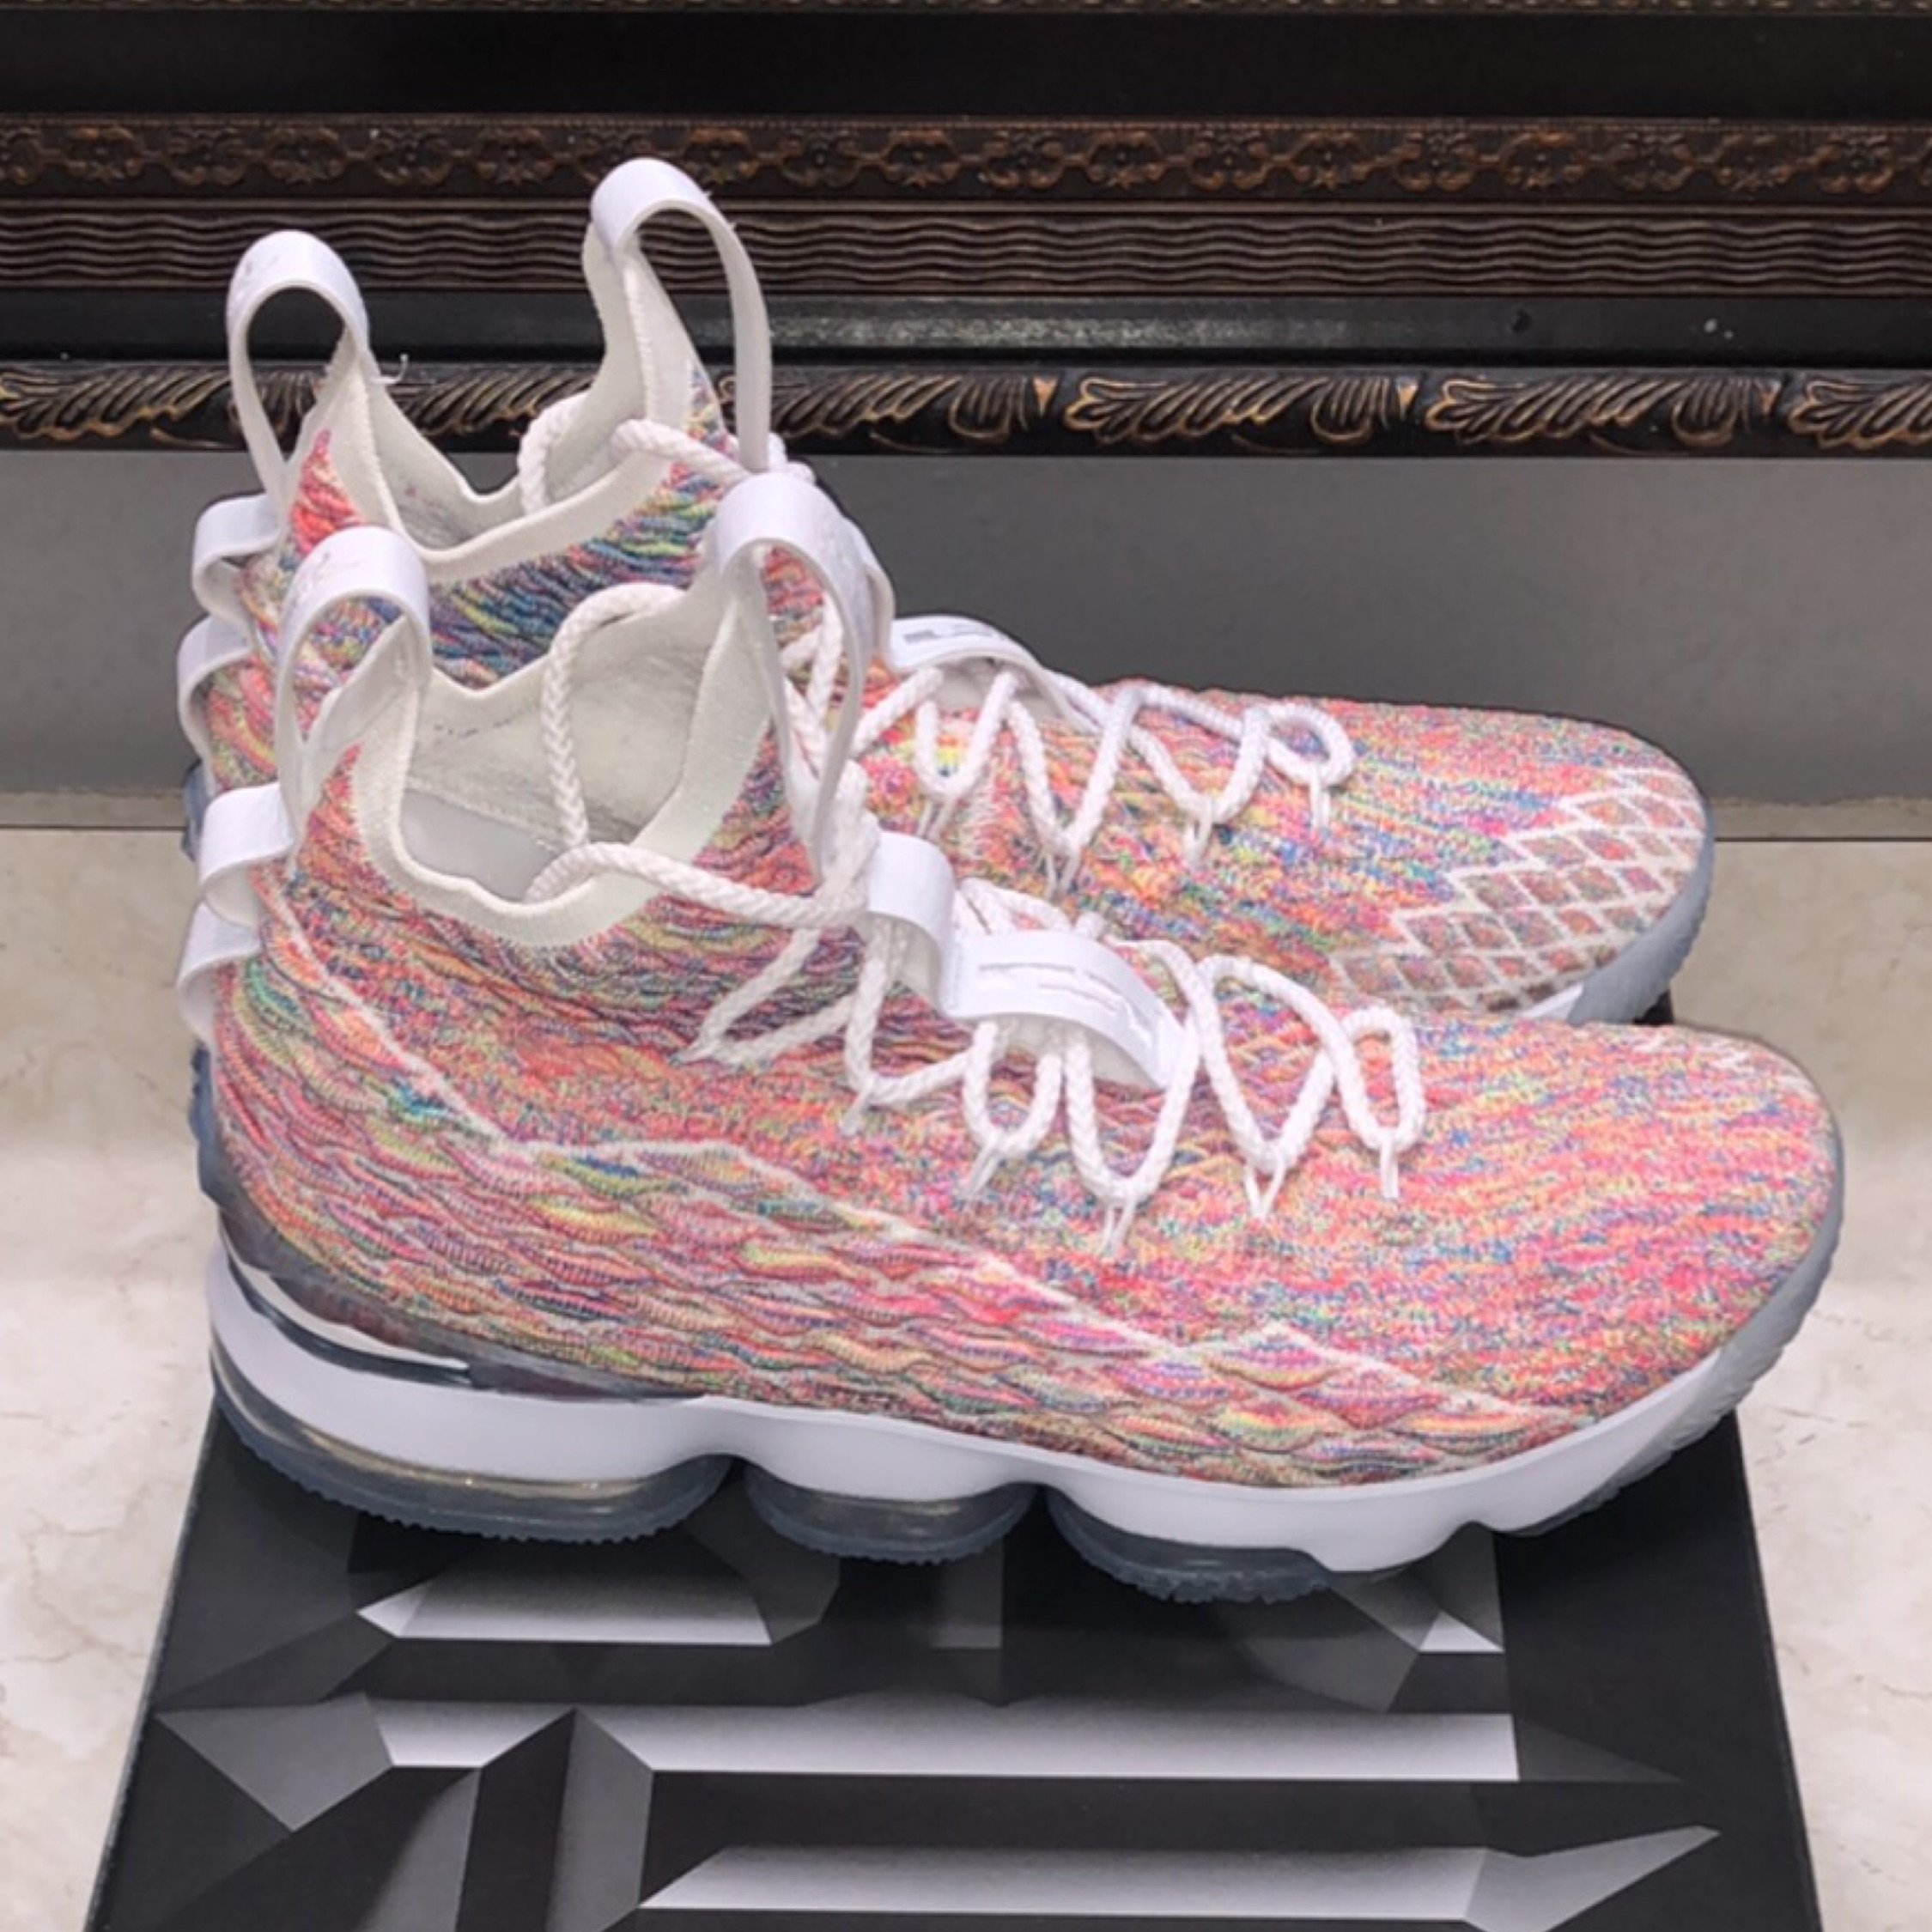 best service c9a07 a6fb8 Lebron 15 Cereal/Fruity Pebbles